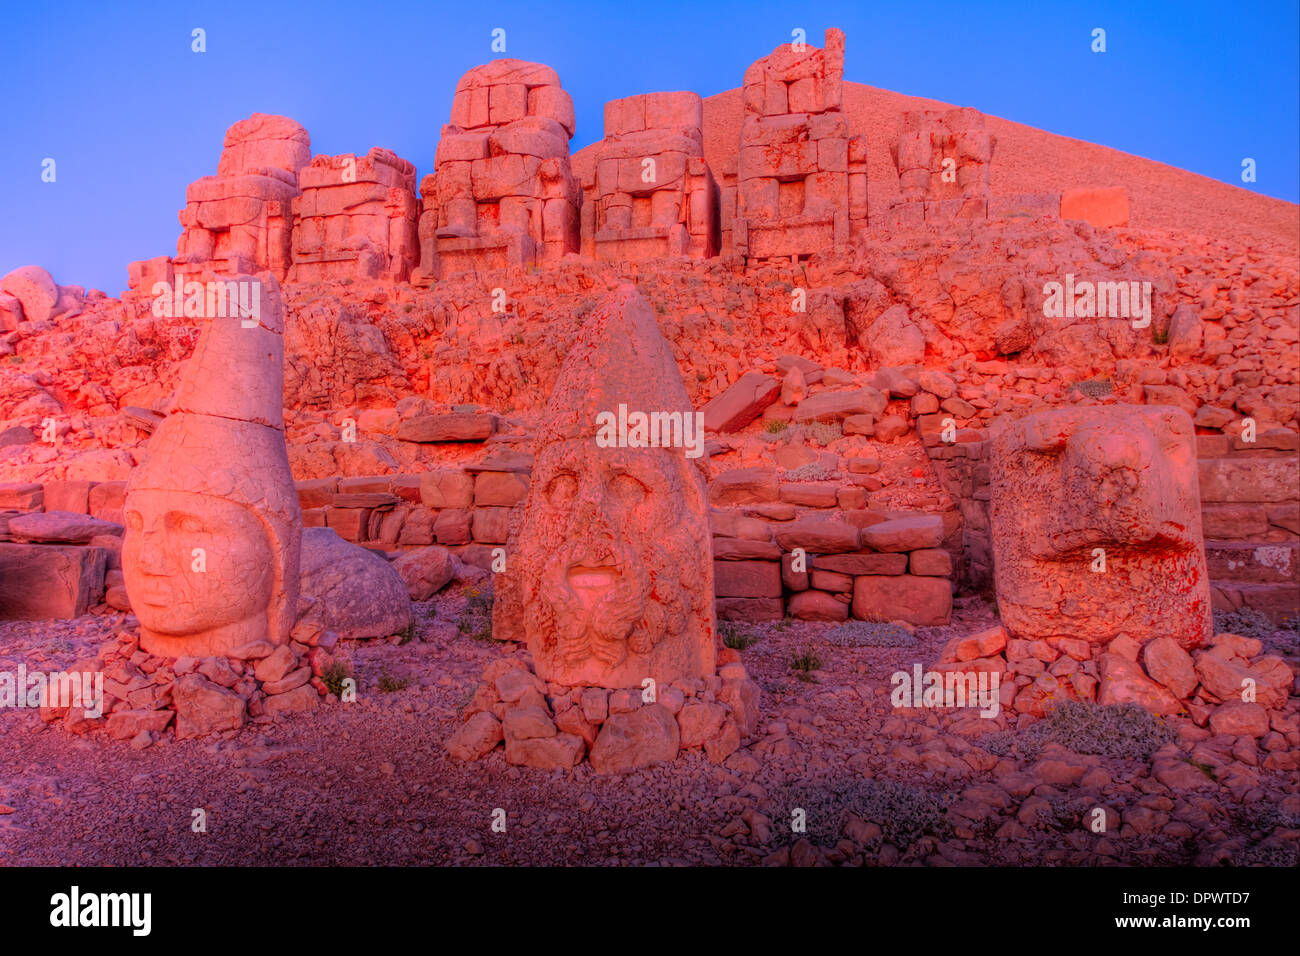 Huge sculpted heads Mt. Nemrut National Park Turkey Ancient remnants of 2000 year old Commagene culture on 7,000 foot mountain - Stock Image